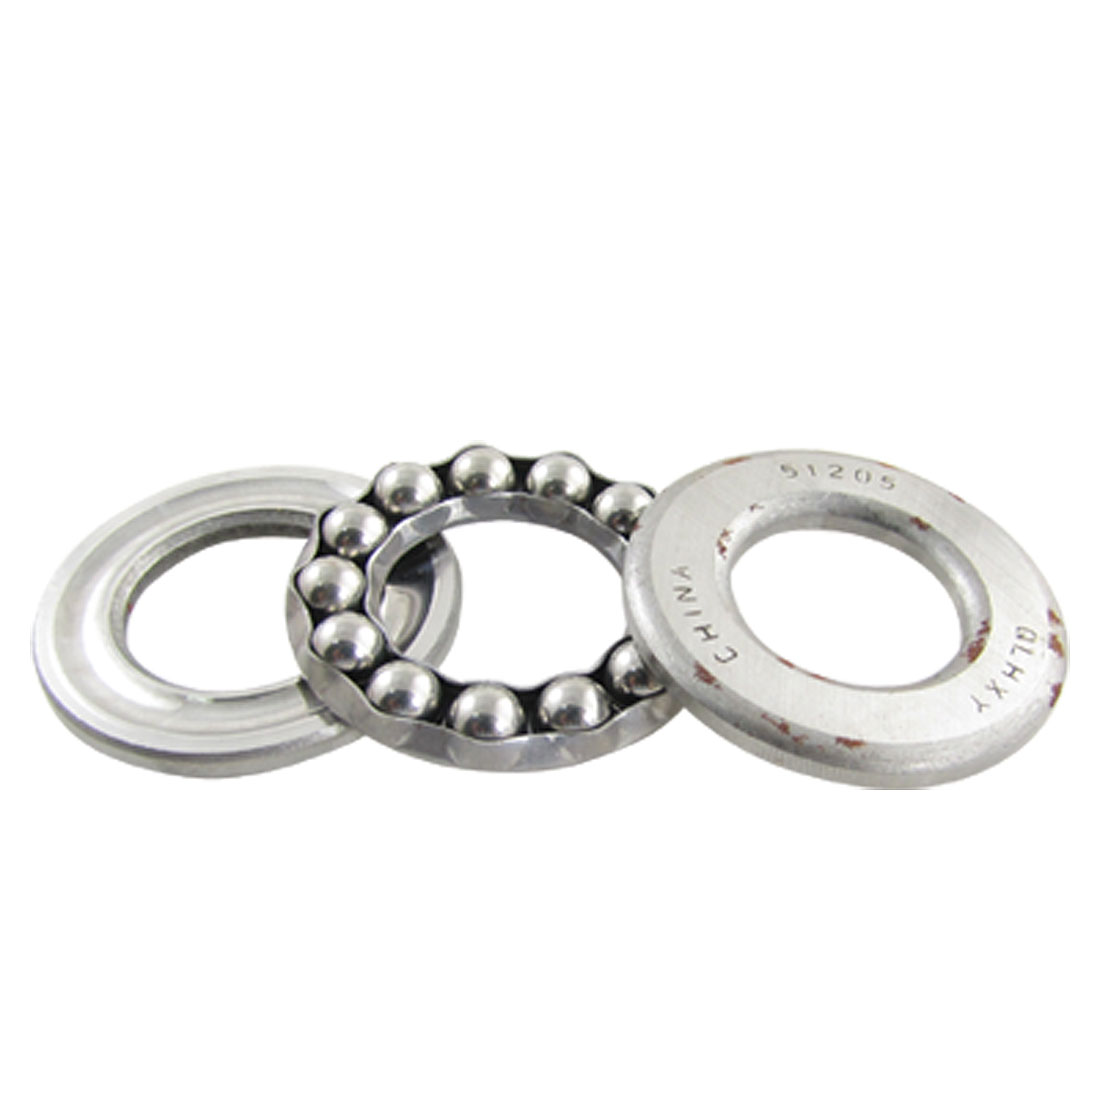 26mm x 47mm x 15mm Axial Ball Thrust Ball Bearing 51205